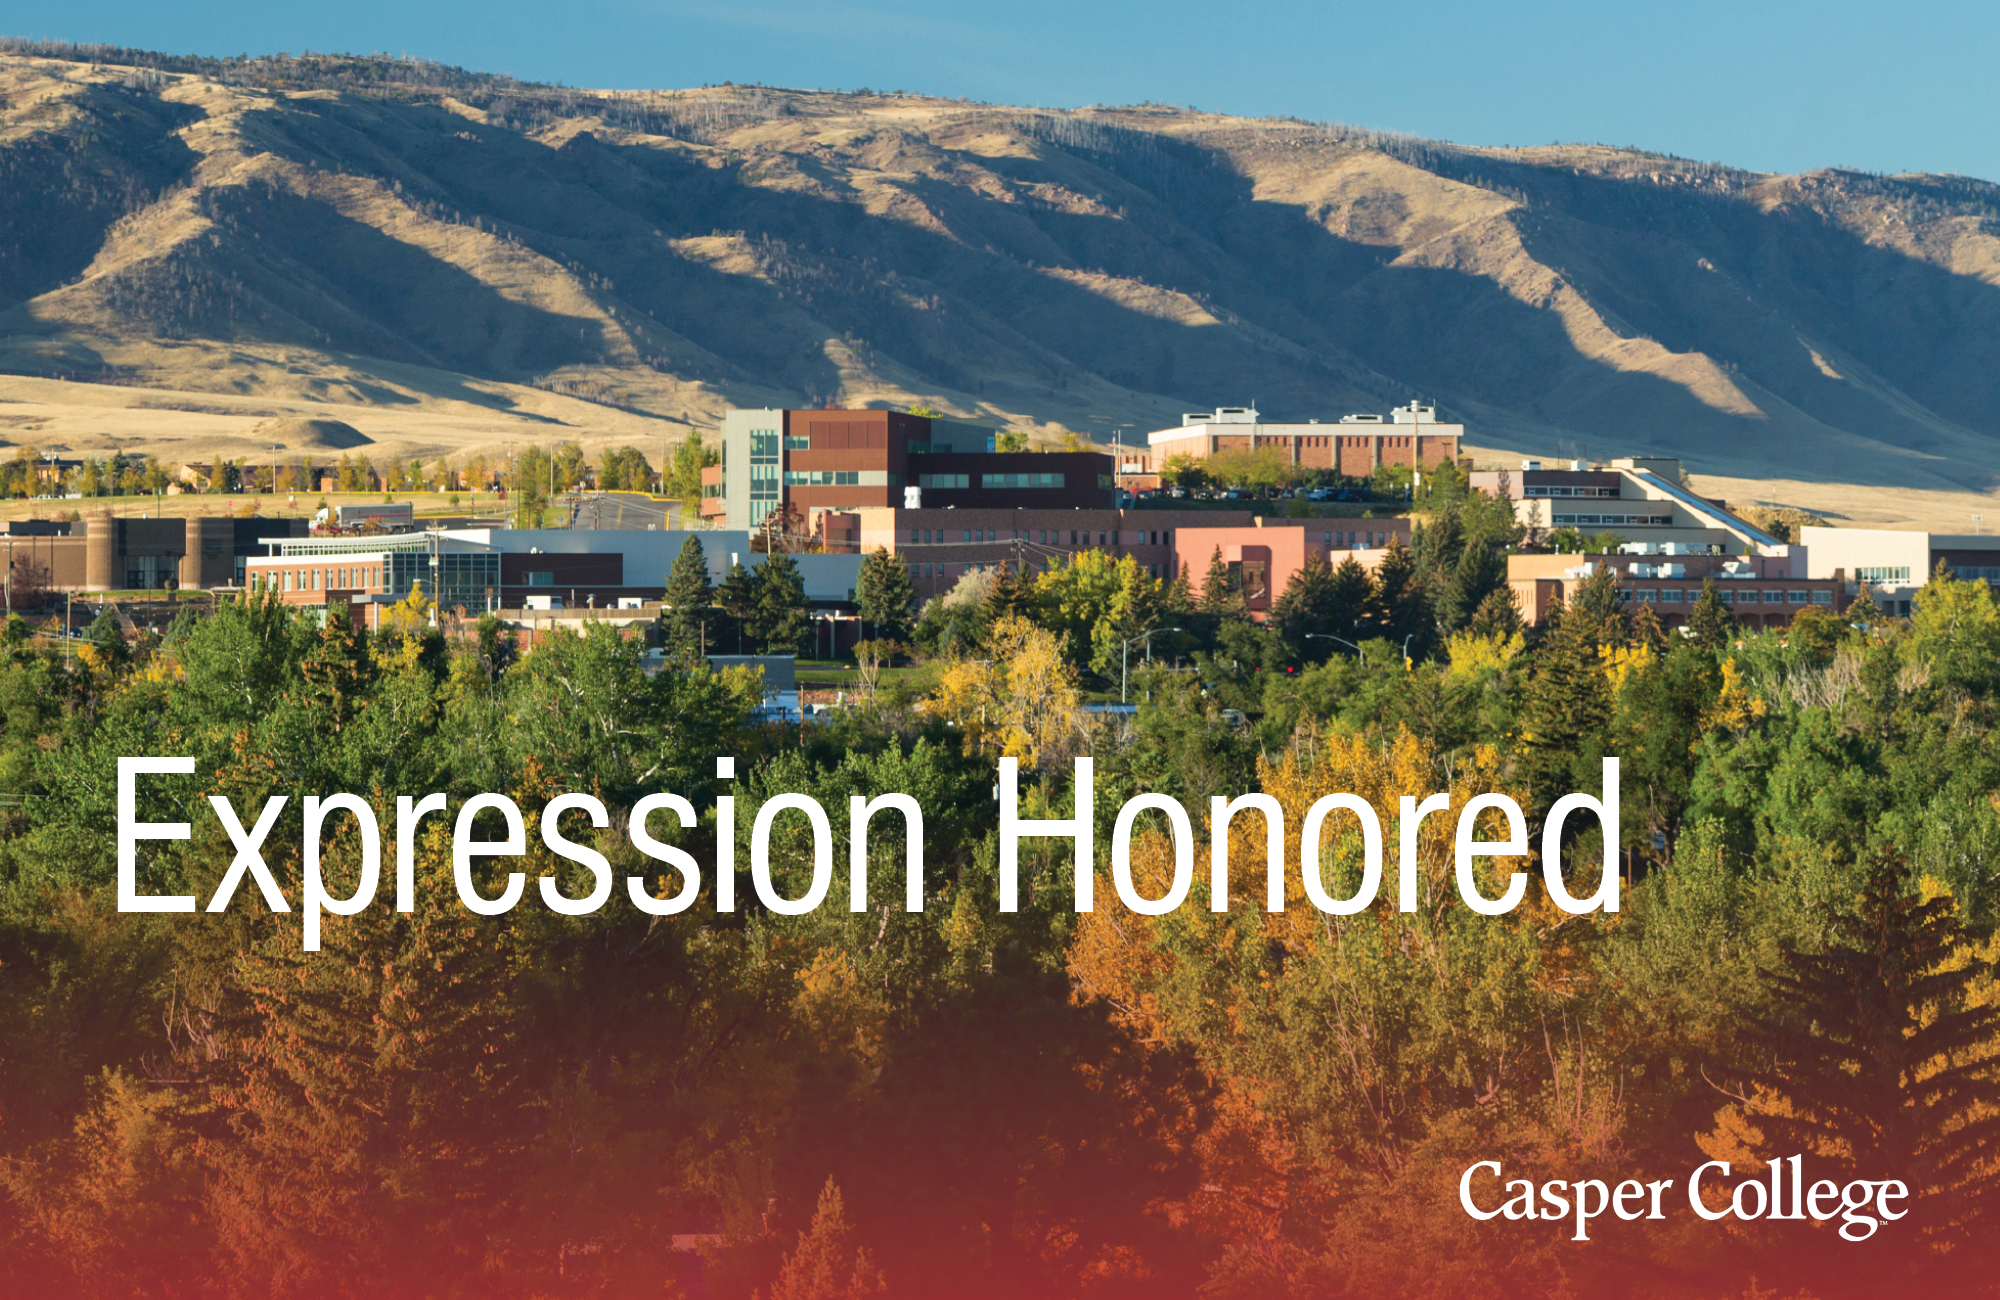 """Image of Casper College campus with the words """"Expression Honored."""""""